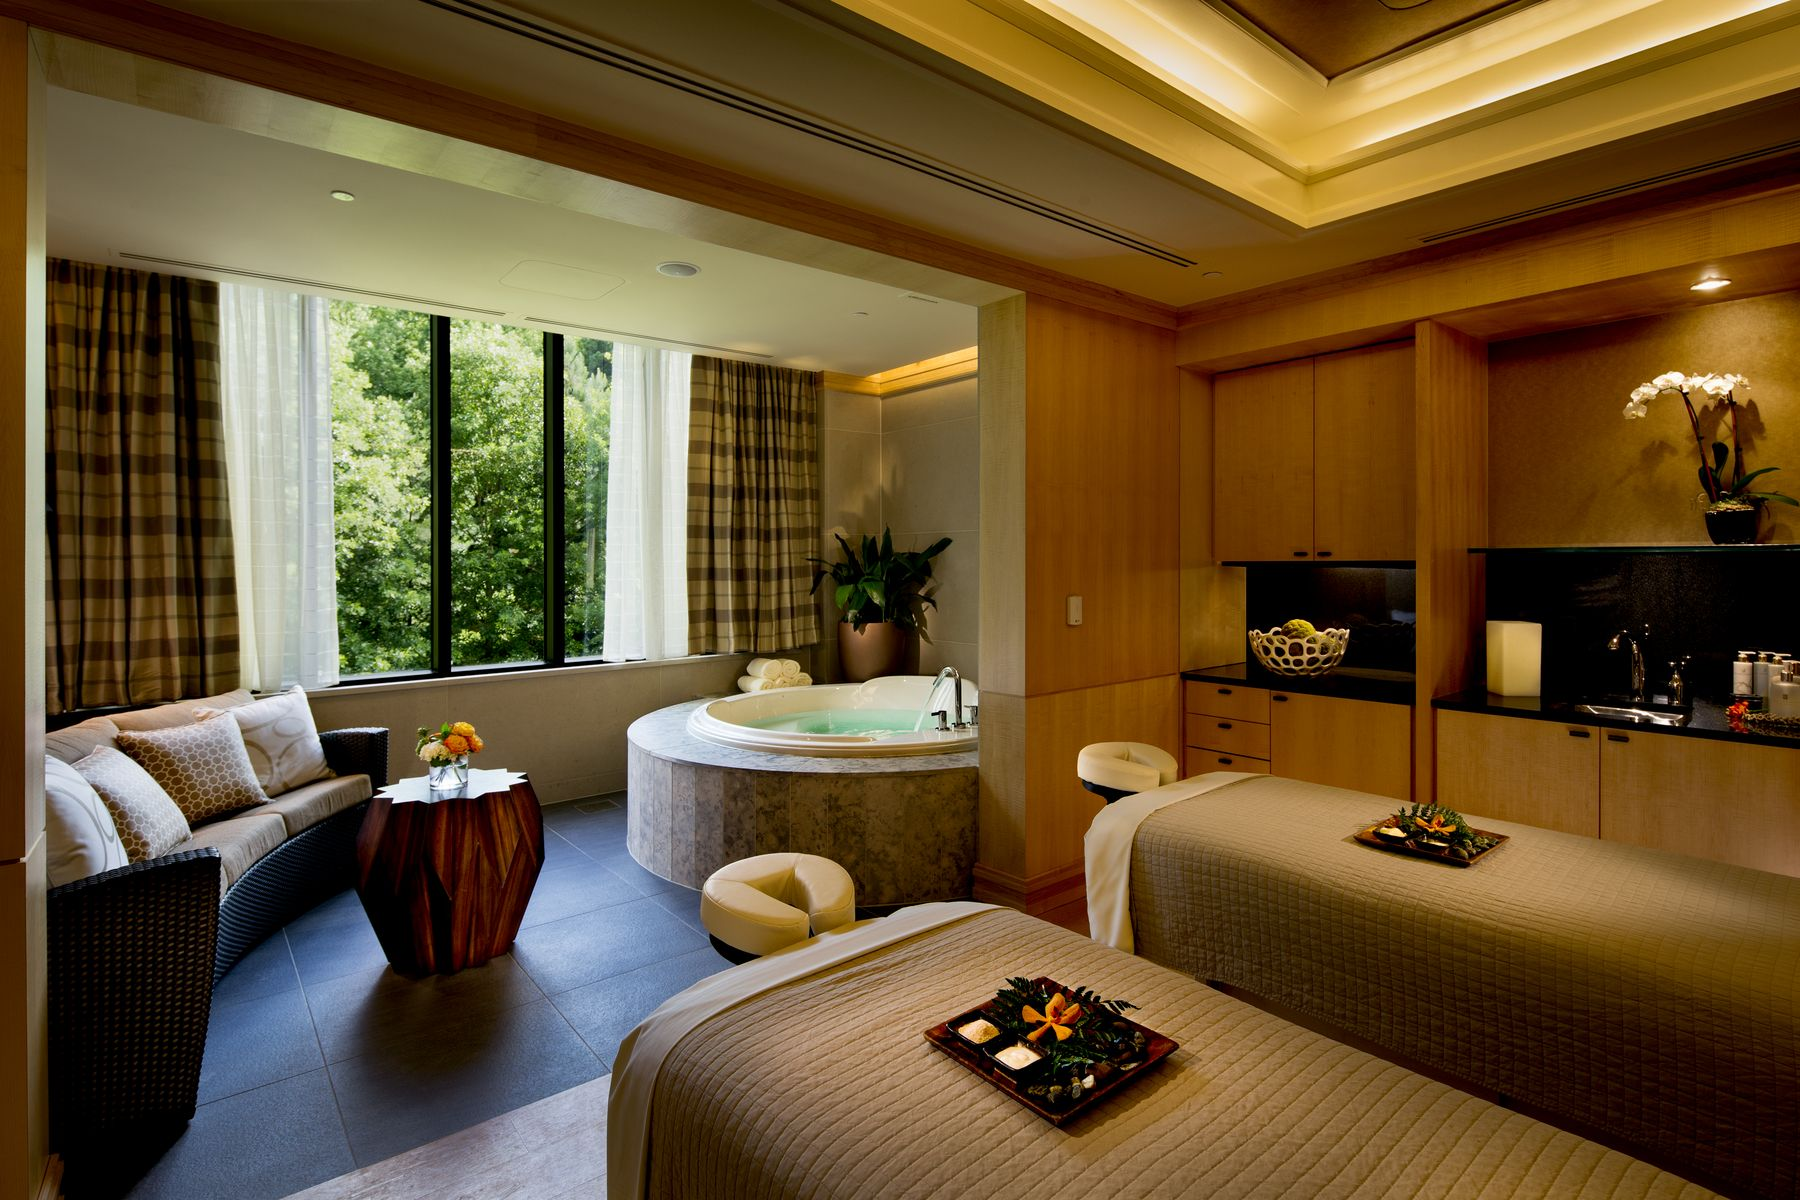 two massage tables with jacuzzi